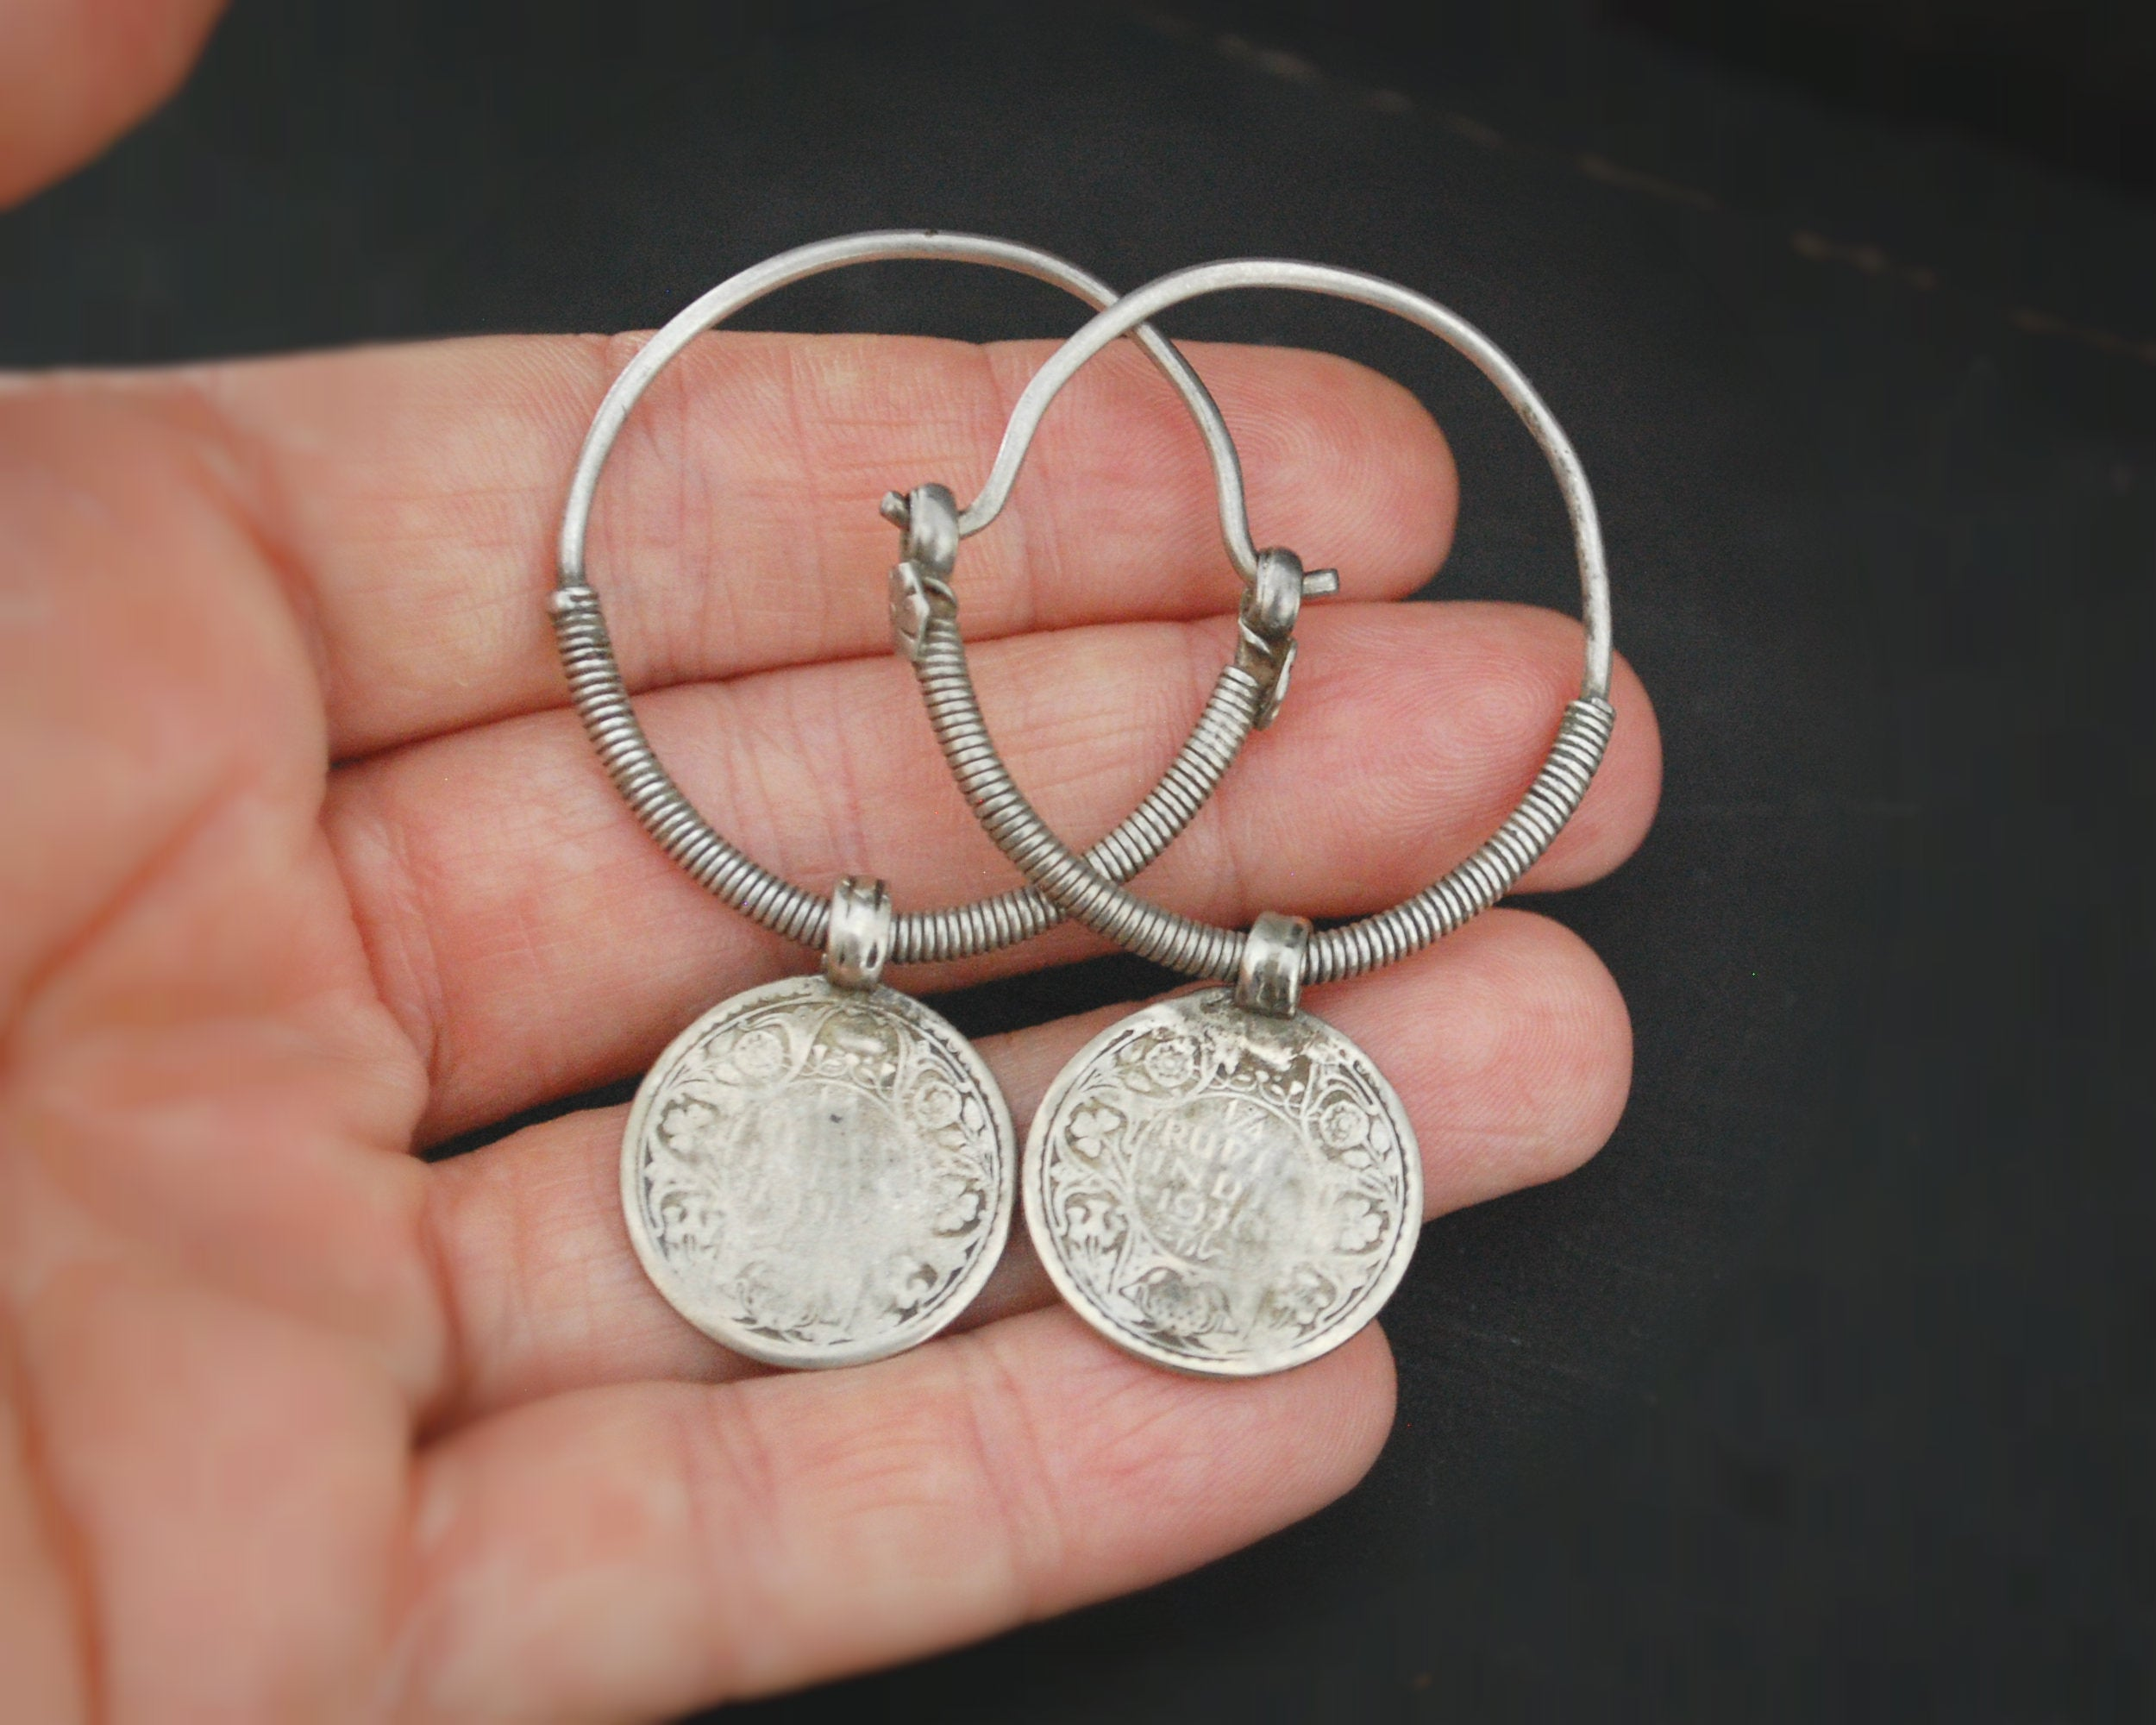 Tribal Indian Hoop Earrings with Coins - LARGE